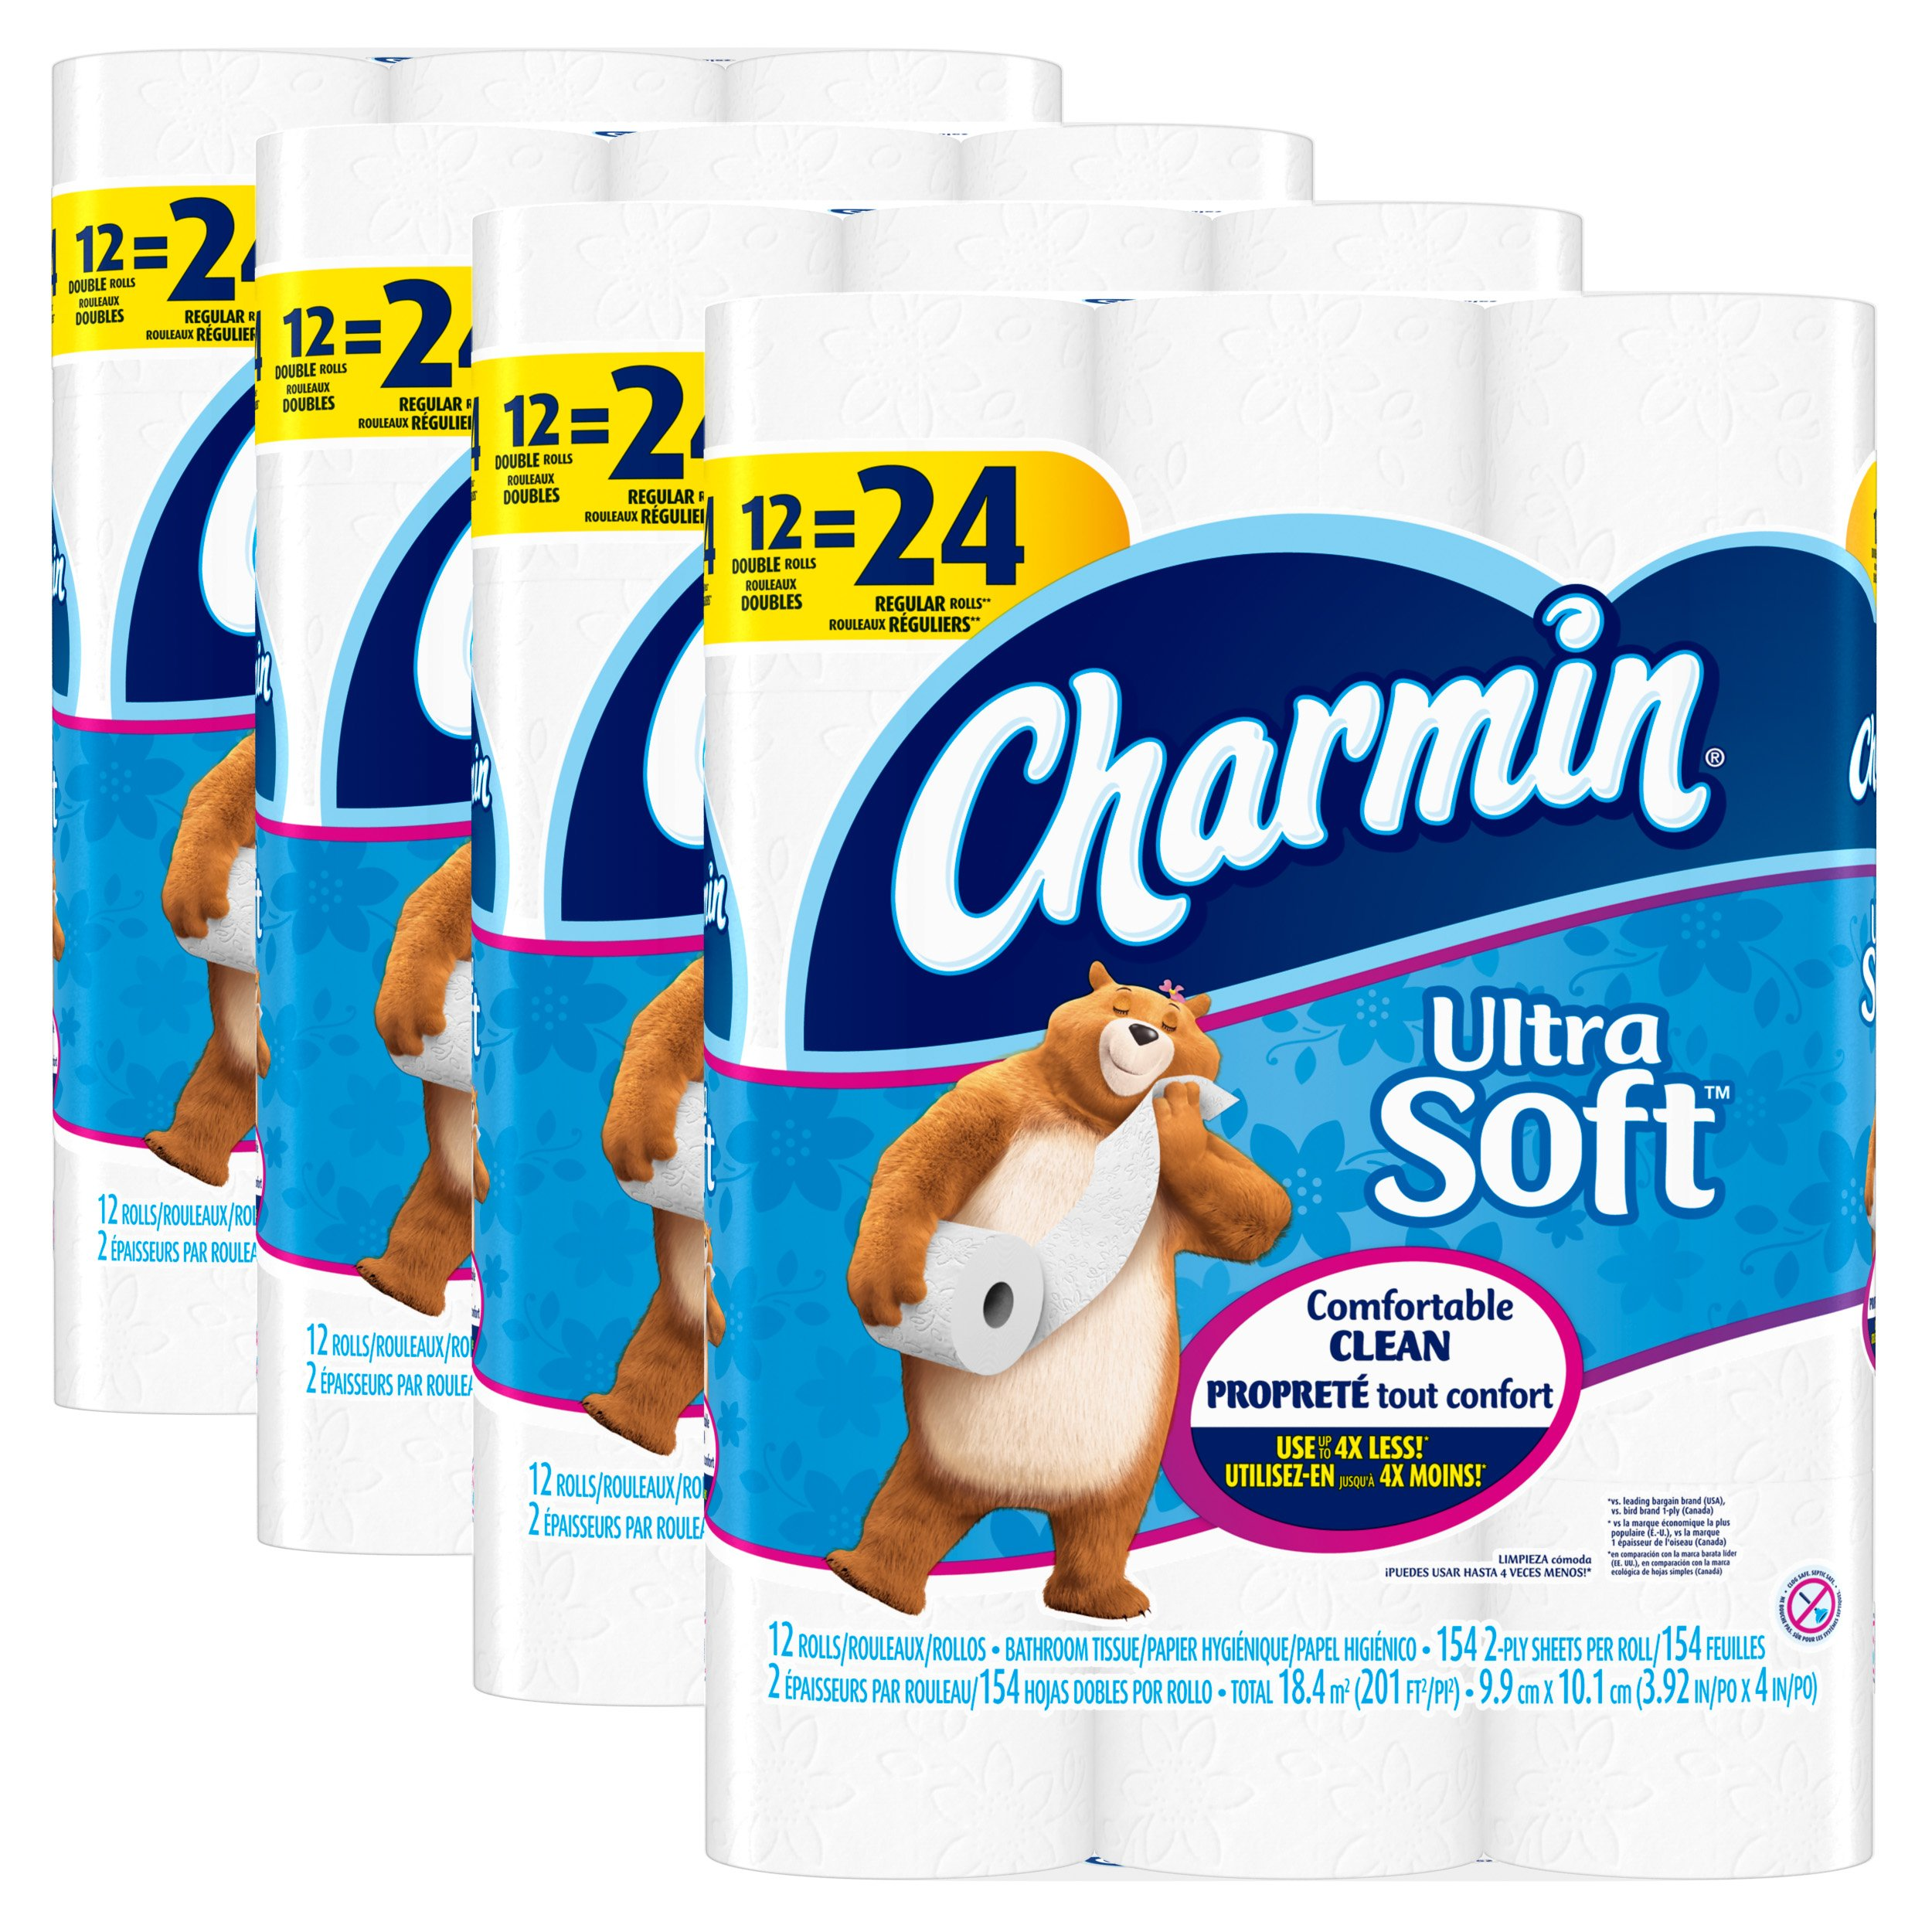 Charmin Ultra Soft Toilet Paper, Bath Tissue, Double Roll, 48 Count by Charmin